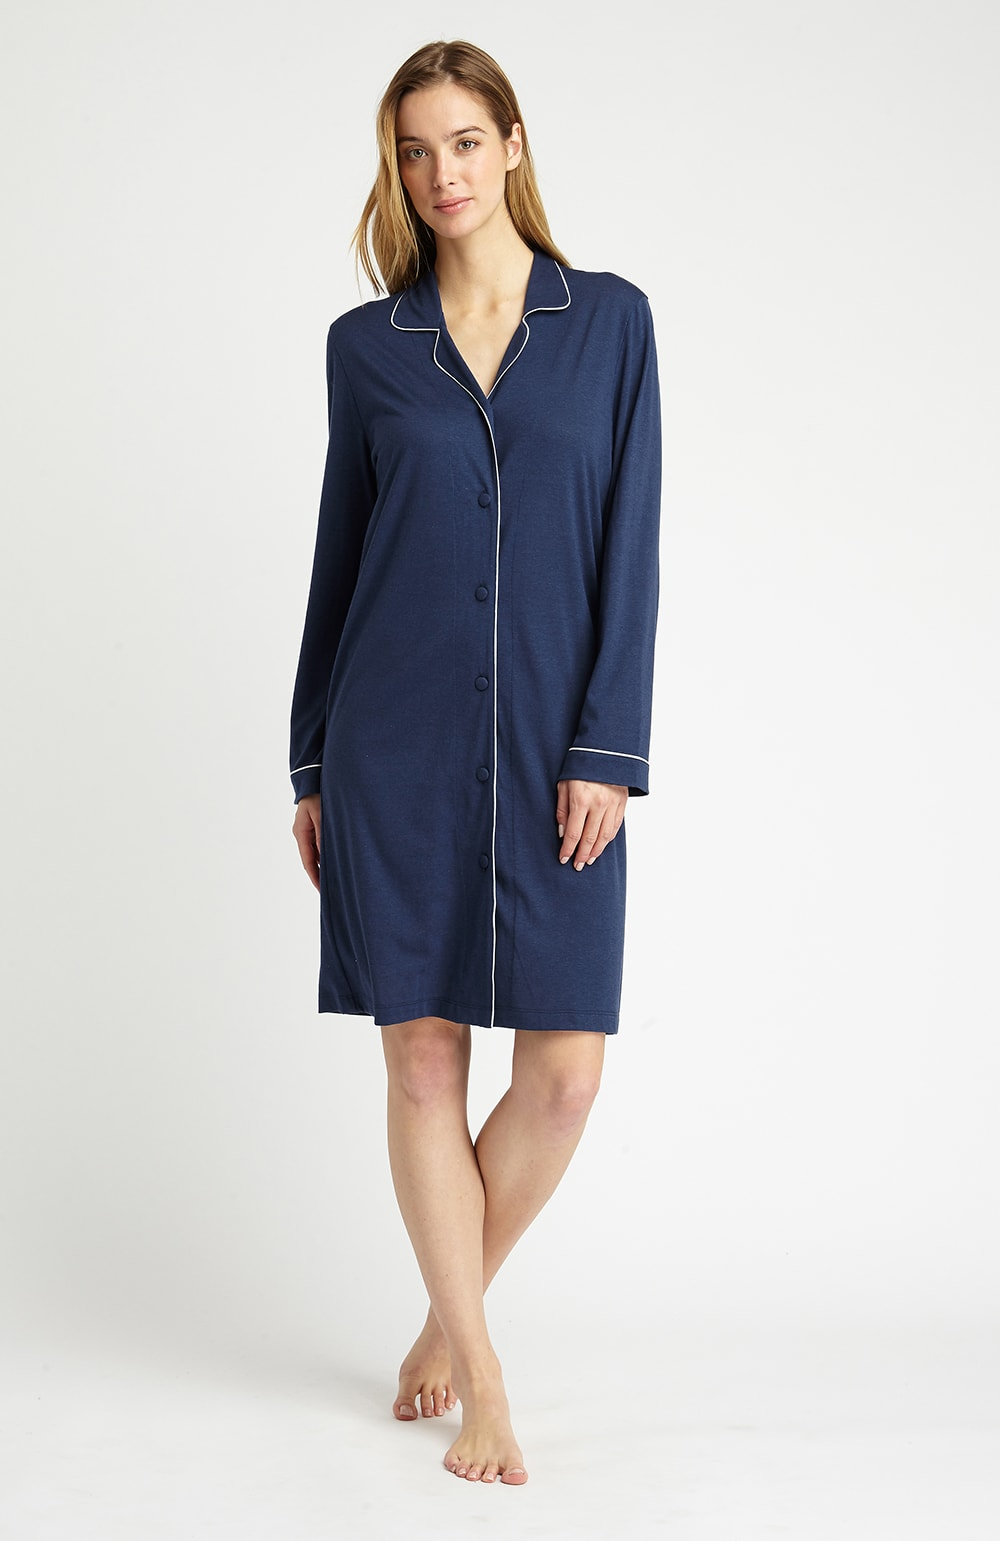 Jersey Nightshirt (glnf)- Midnight